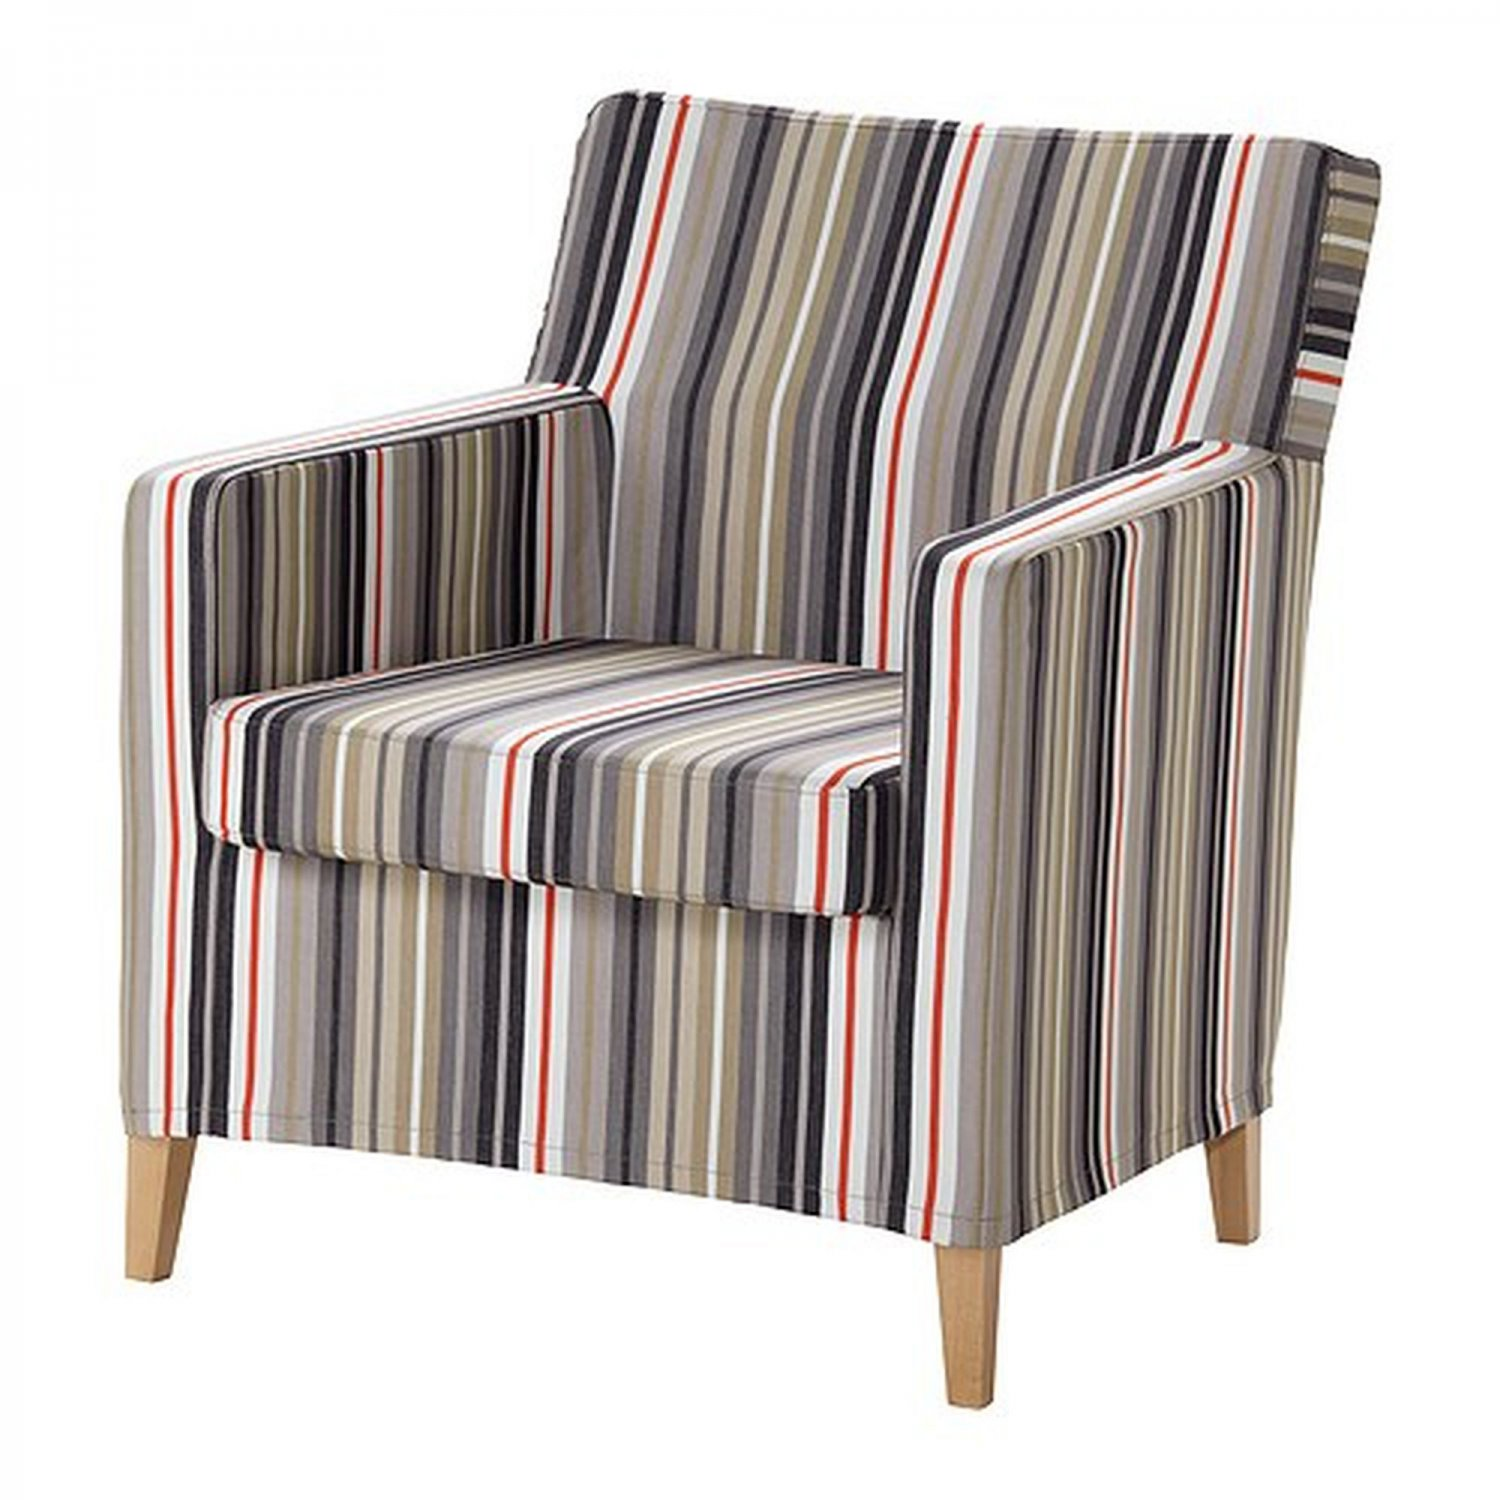 ikea karlstad chair slipcover armchair cover dillne gray beige multi stripes. Black Bedroom Furniture Sets. Home Design Ideas